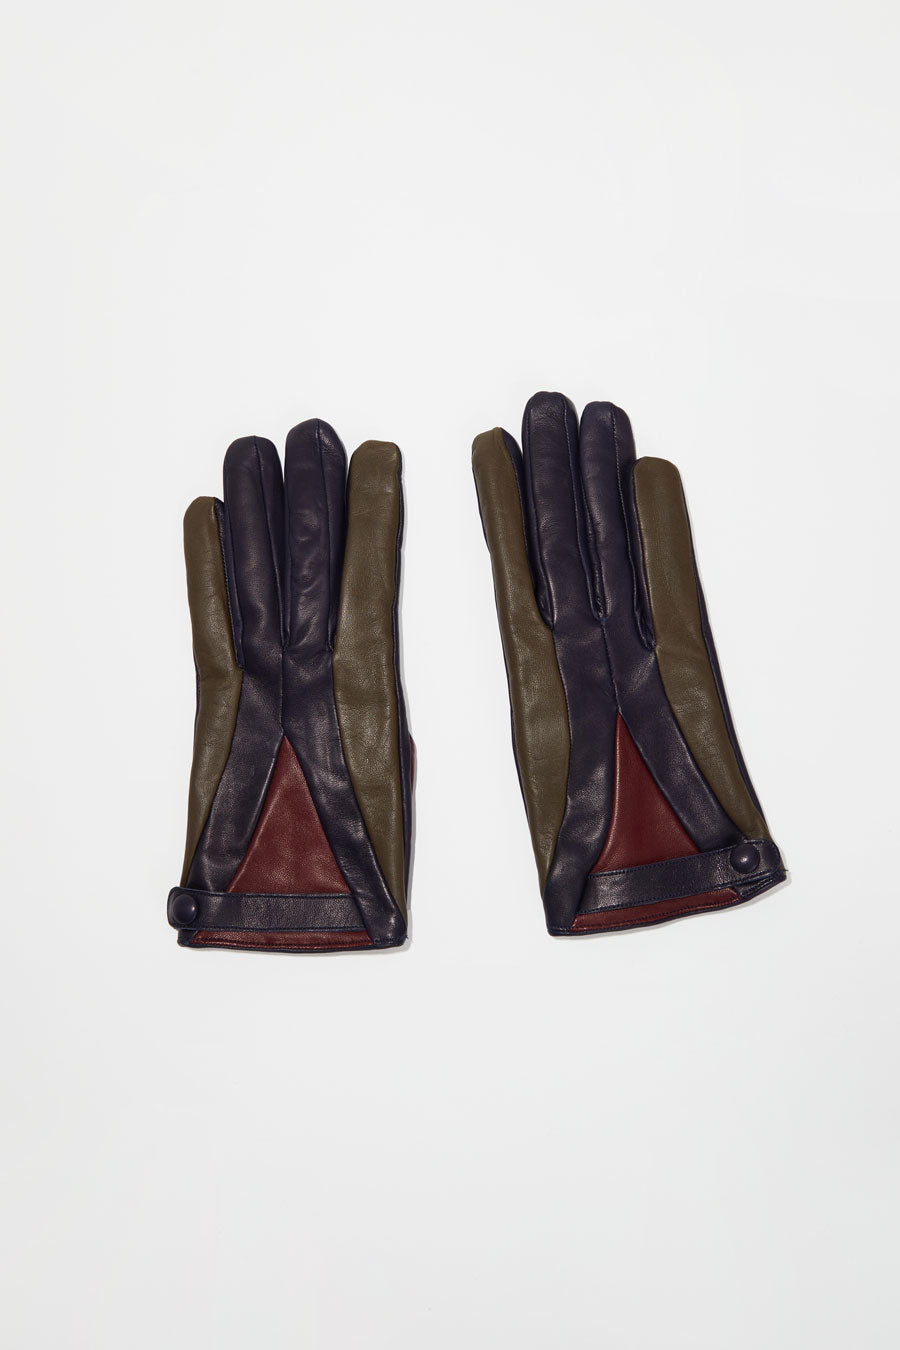 Imoni Swing Glove in Laurel, Mysterioso, and Tokay